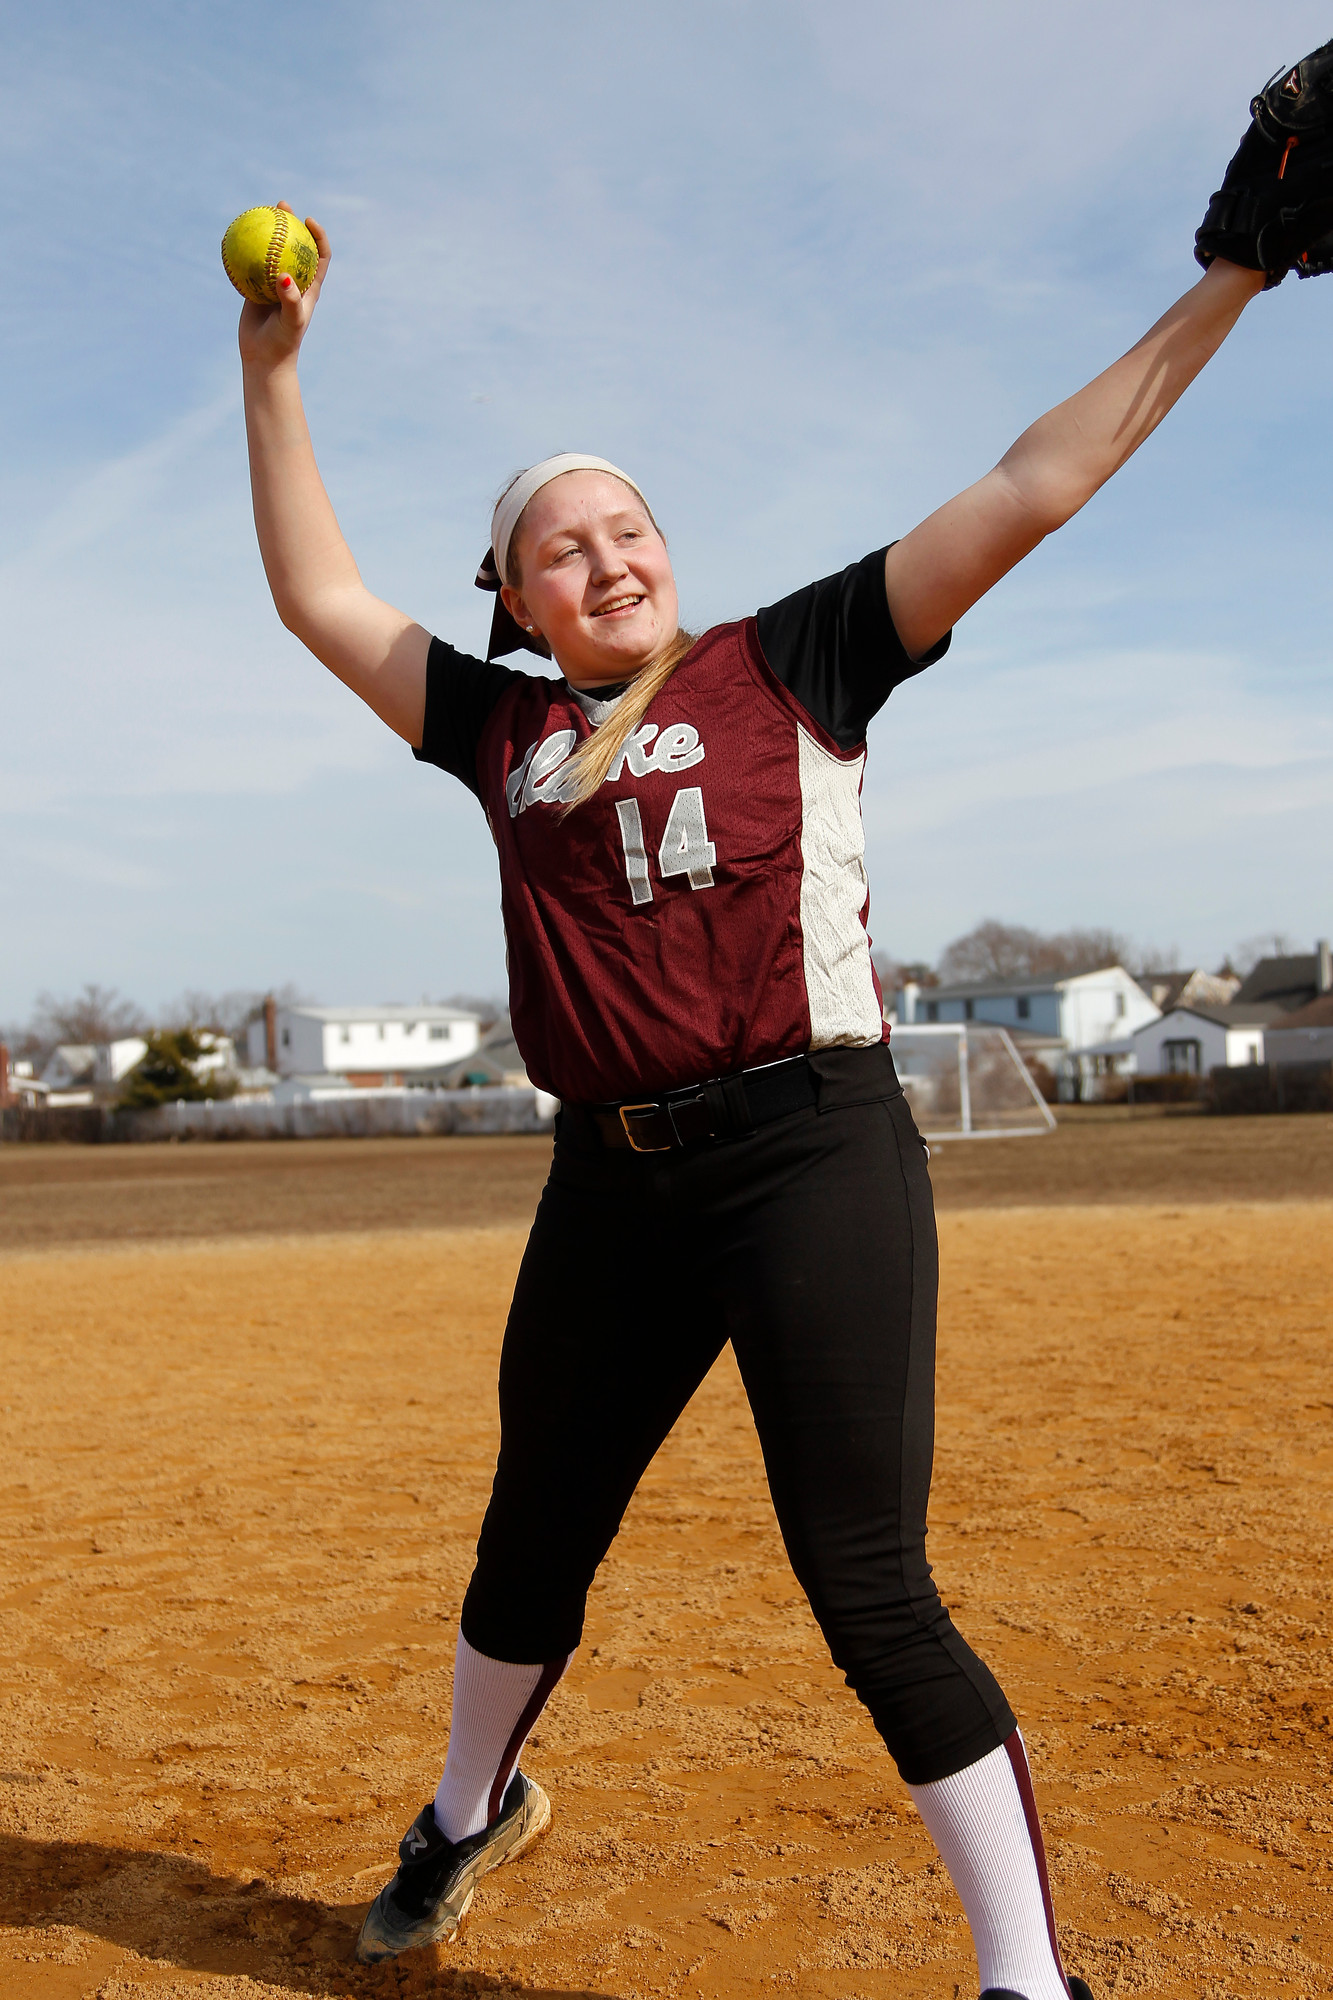 Sarah Cornell, a sophomore, has tossed three no-hitters, and has amassed more than 600 strikeouts in her Clarke varsity career, which began as a seventh-grader.